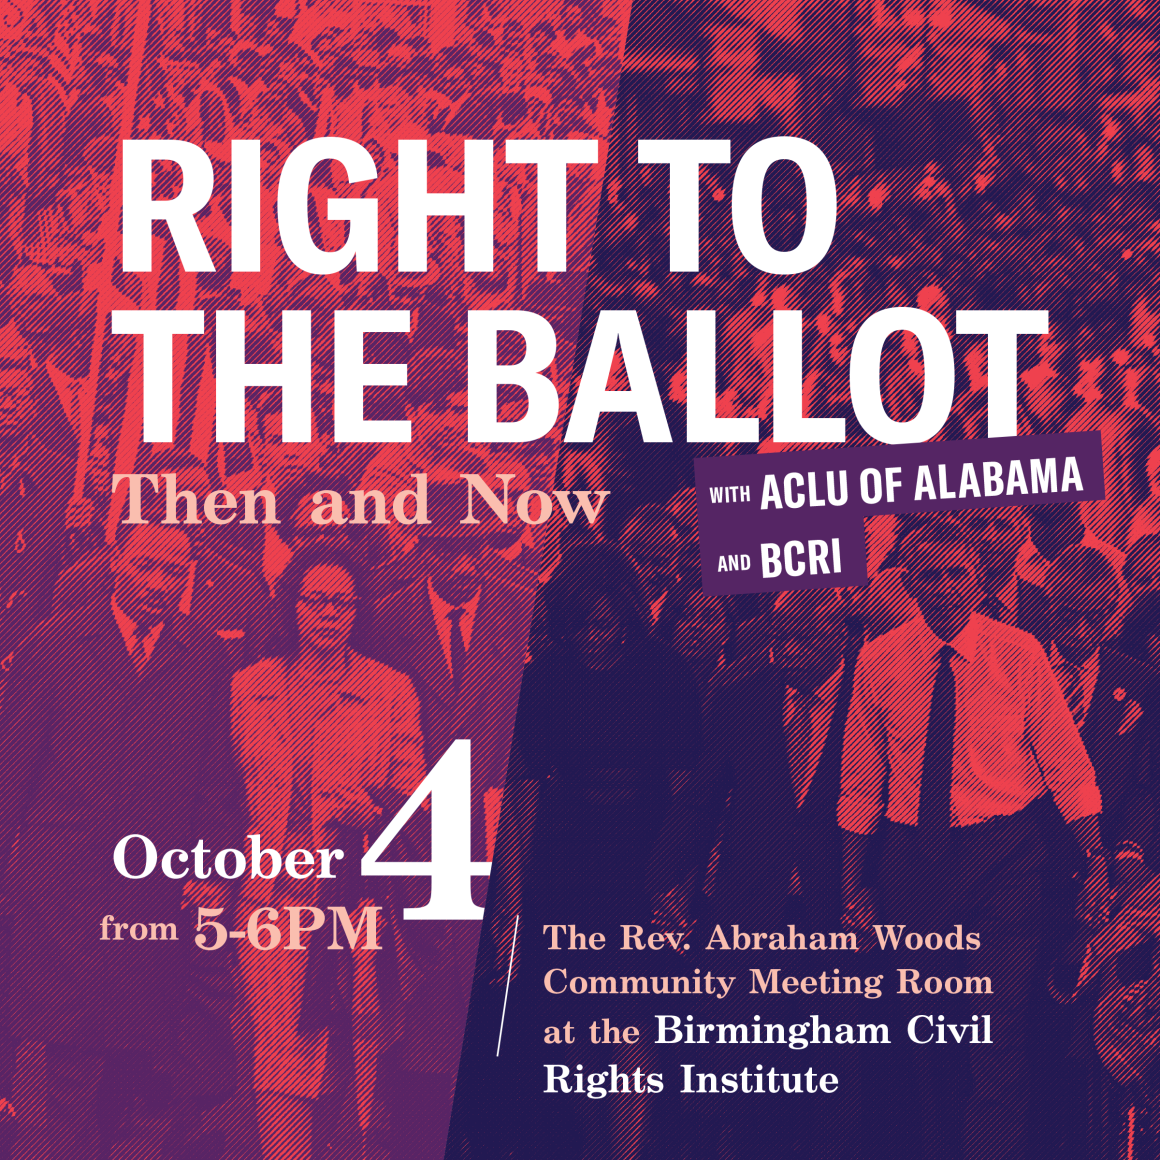 right to the ballot flyer